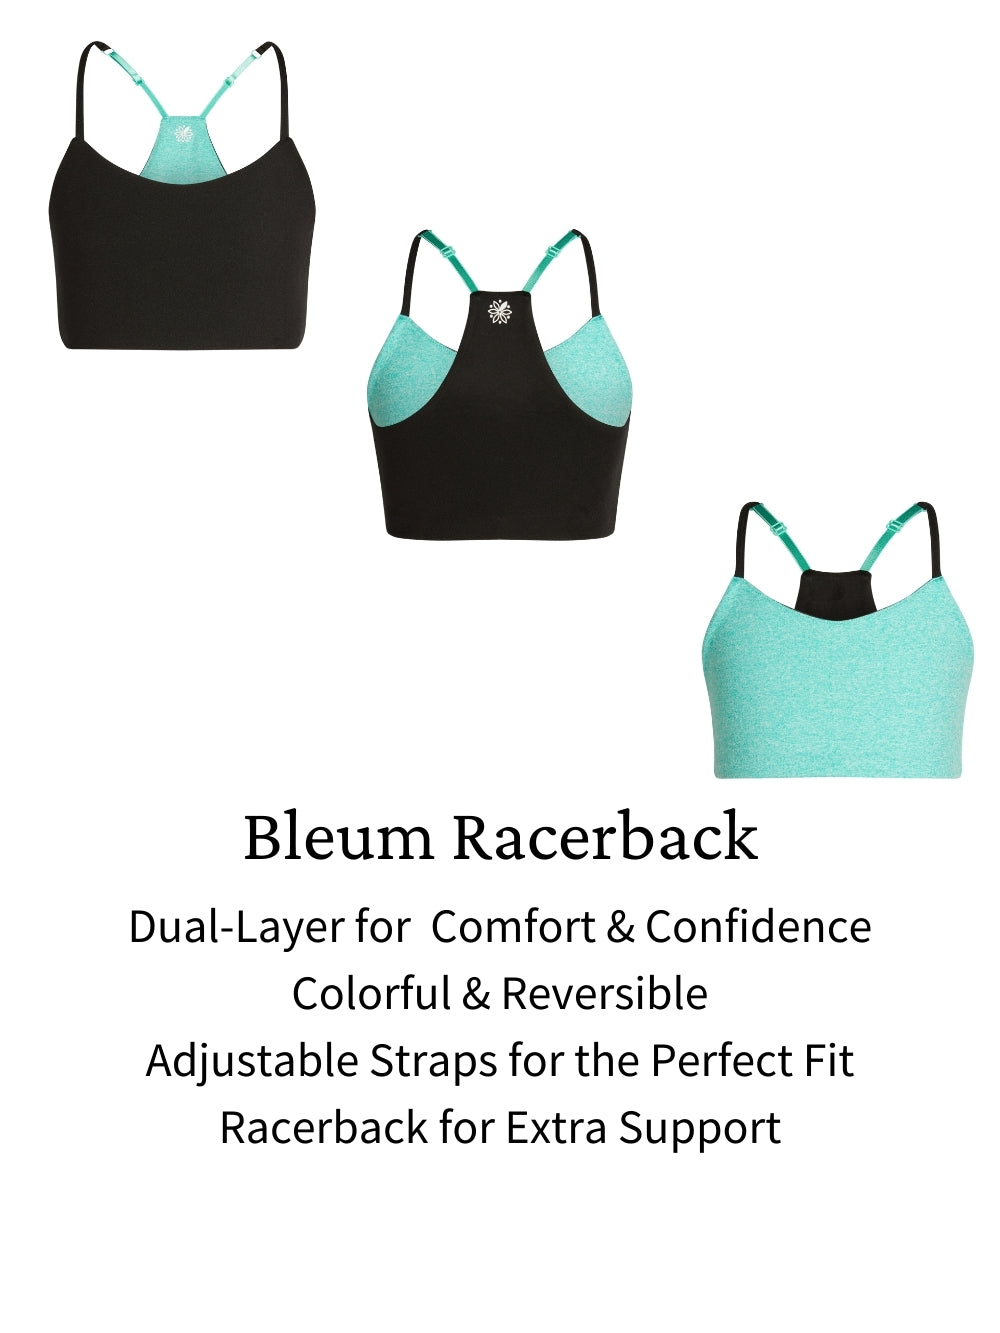 Bleum Racerback bras are her perfect first sports bra or girls sports bra designed to fit girls from age 7 to 15 and provides the coverage and support she needs.